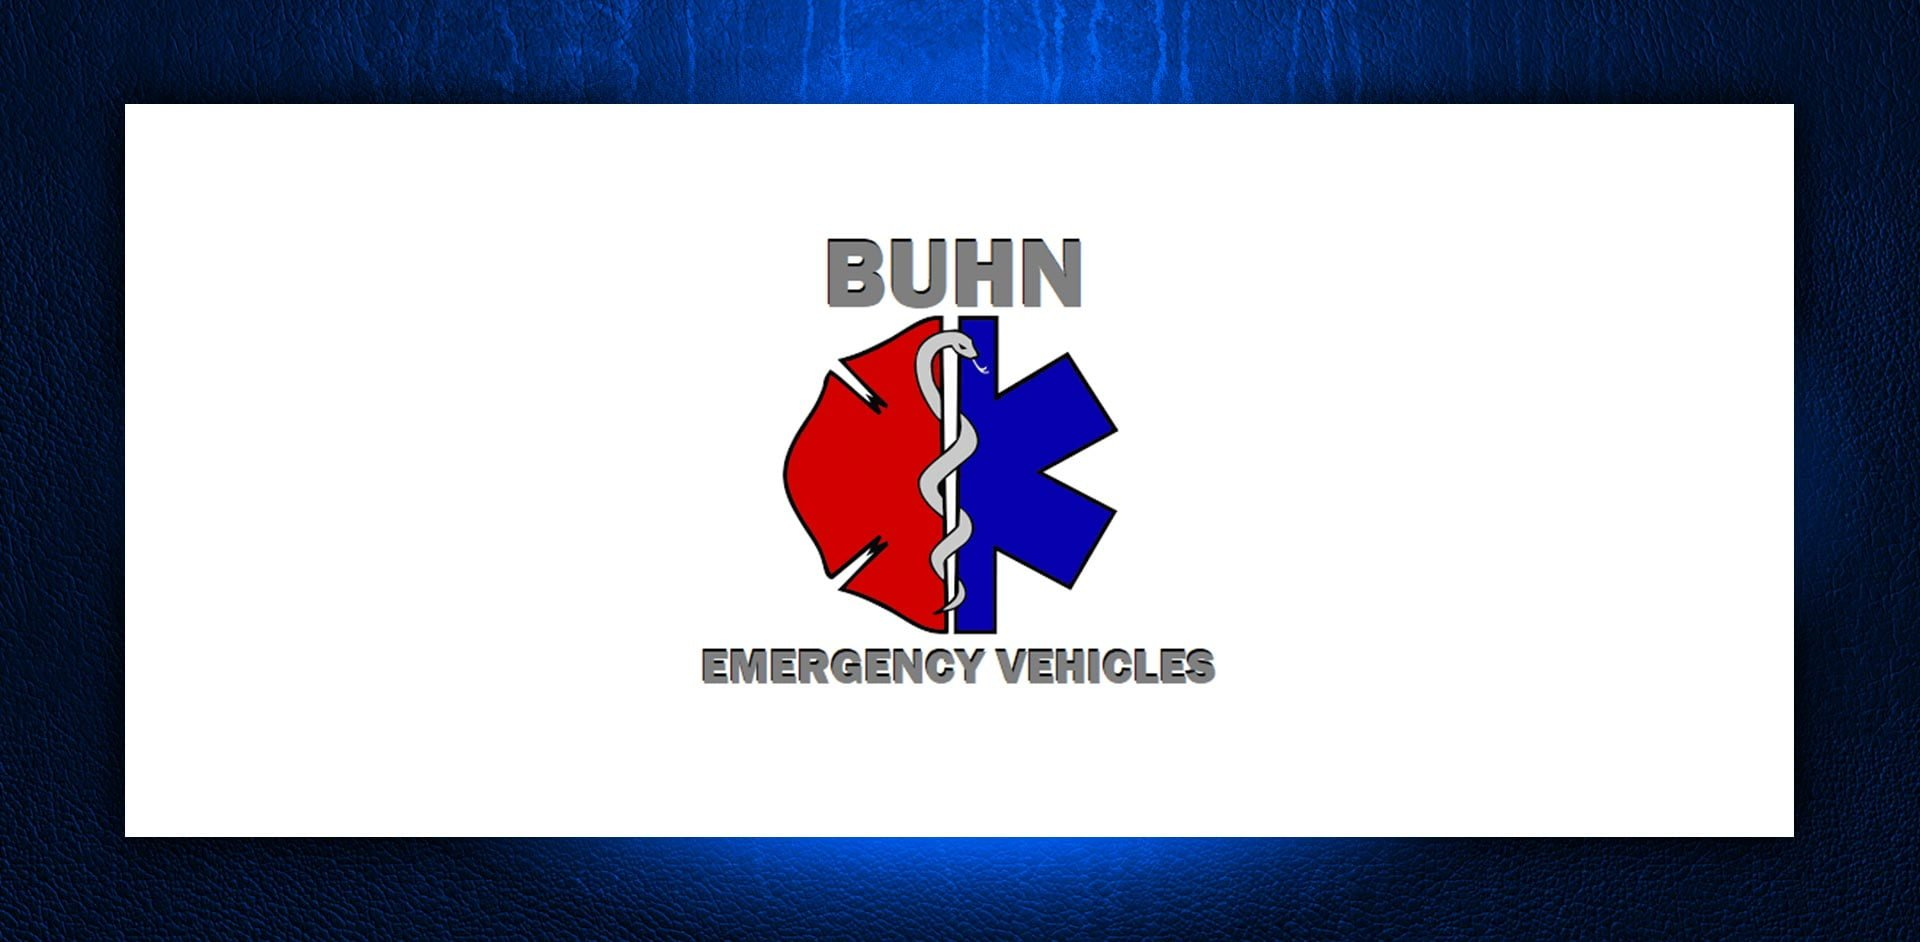 Buhn Emergency Vehicles